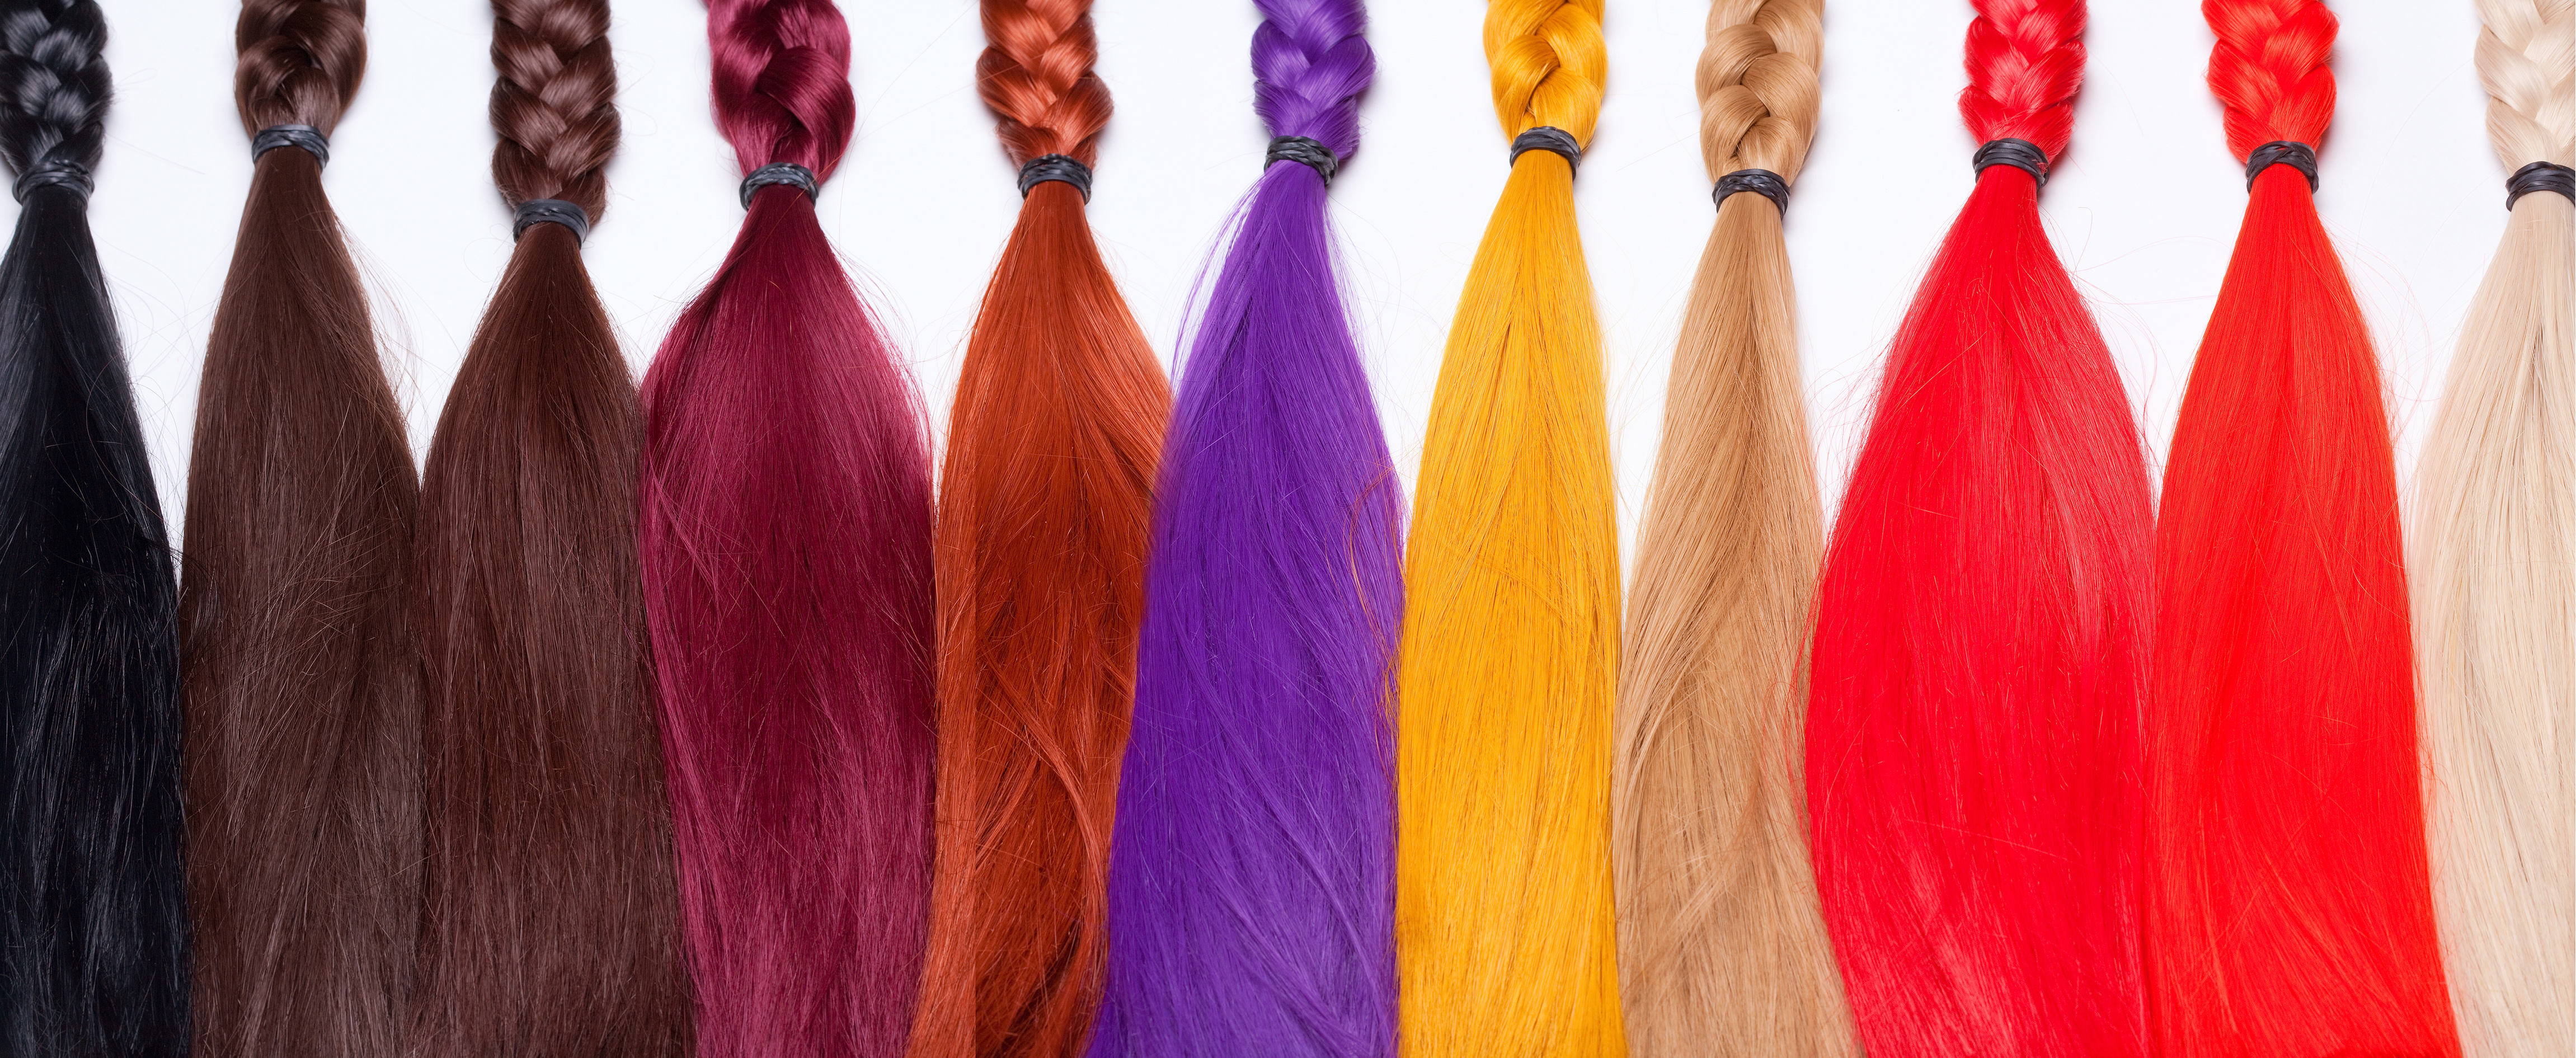 Clip in hair extensions colored indian remy hair clip in hair extensions colored pmusecretfo Choice Image